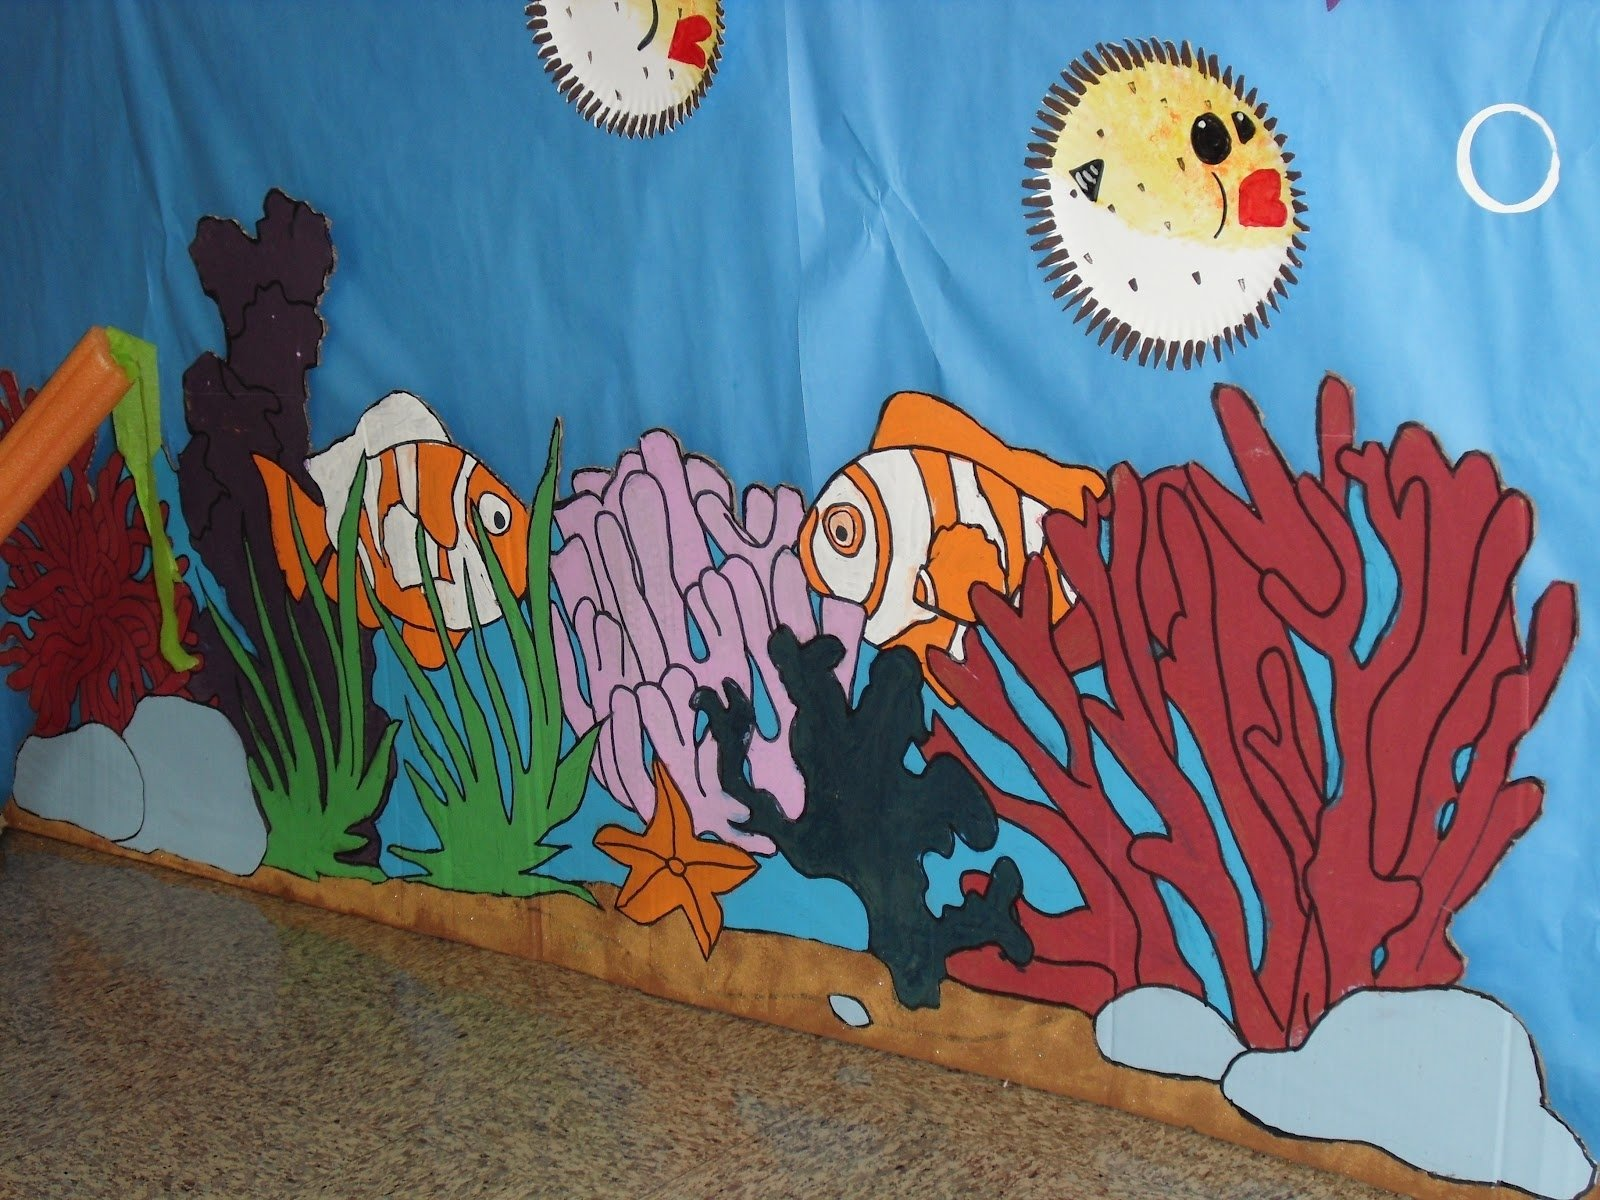 10 Fabulous Vacation Bible School Themes And Ideas mixingitup vacation bible school ideas for underwater theme 2020